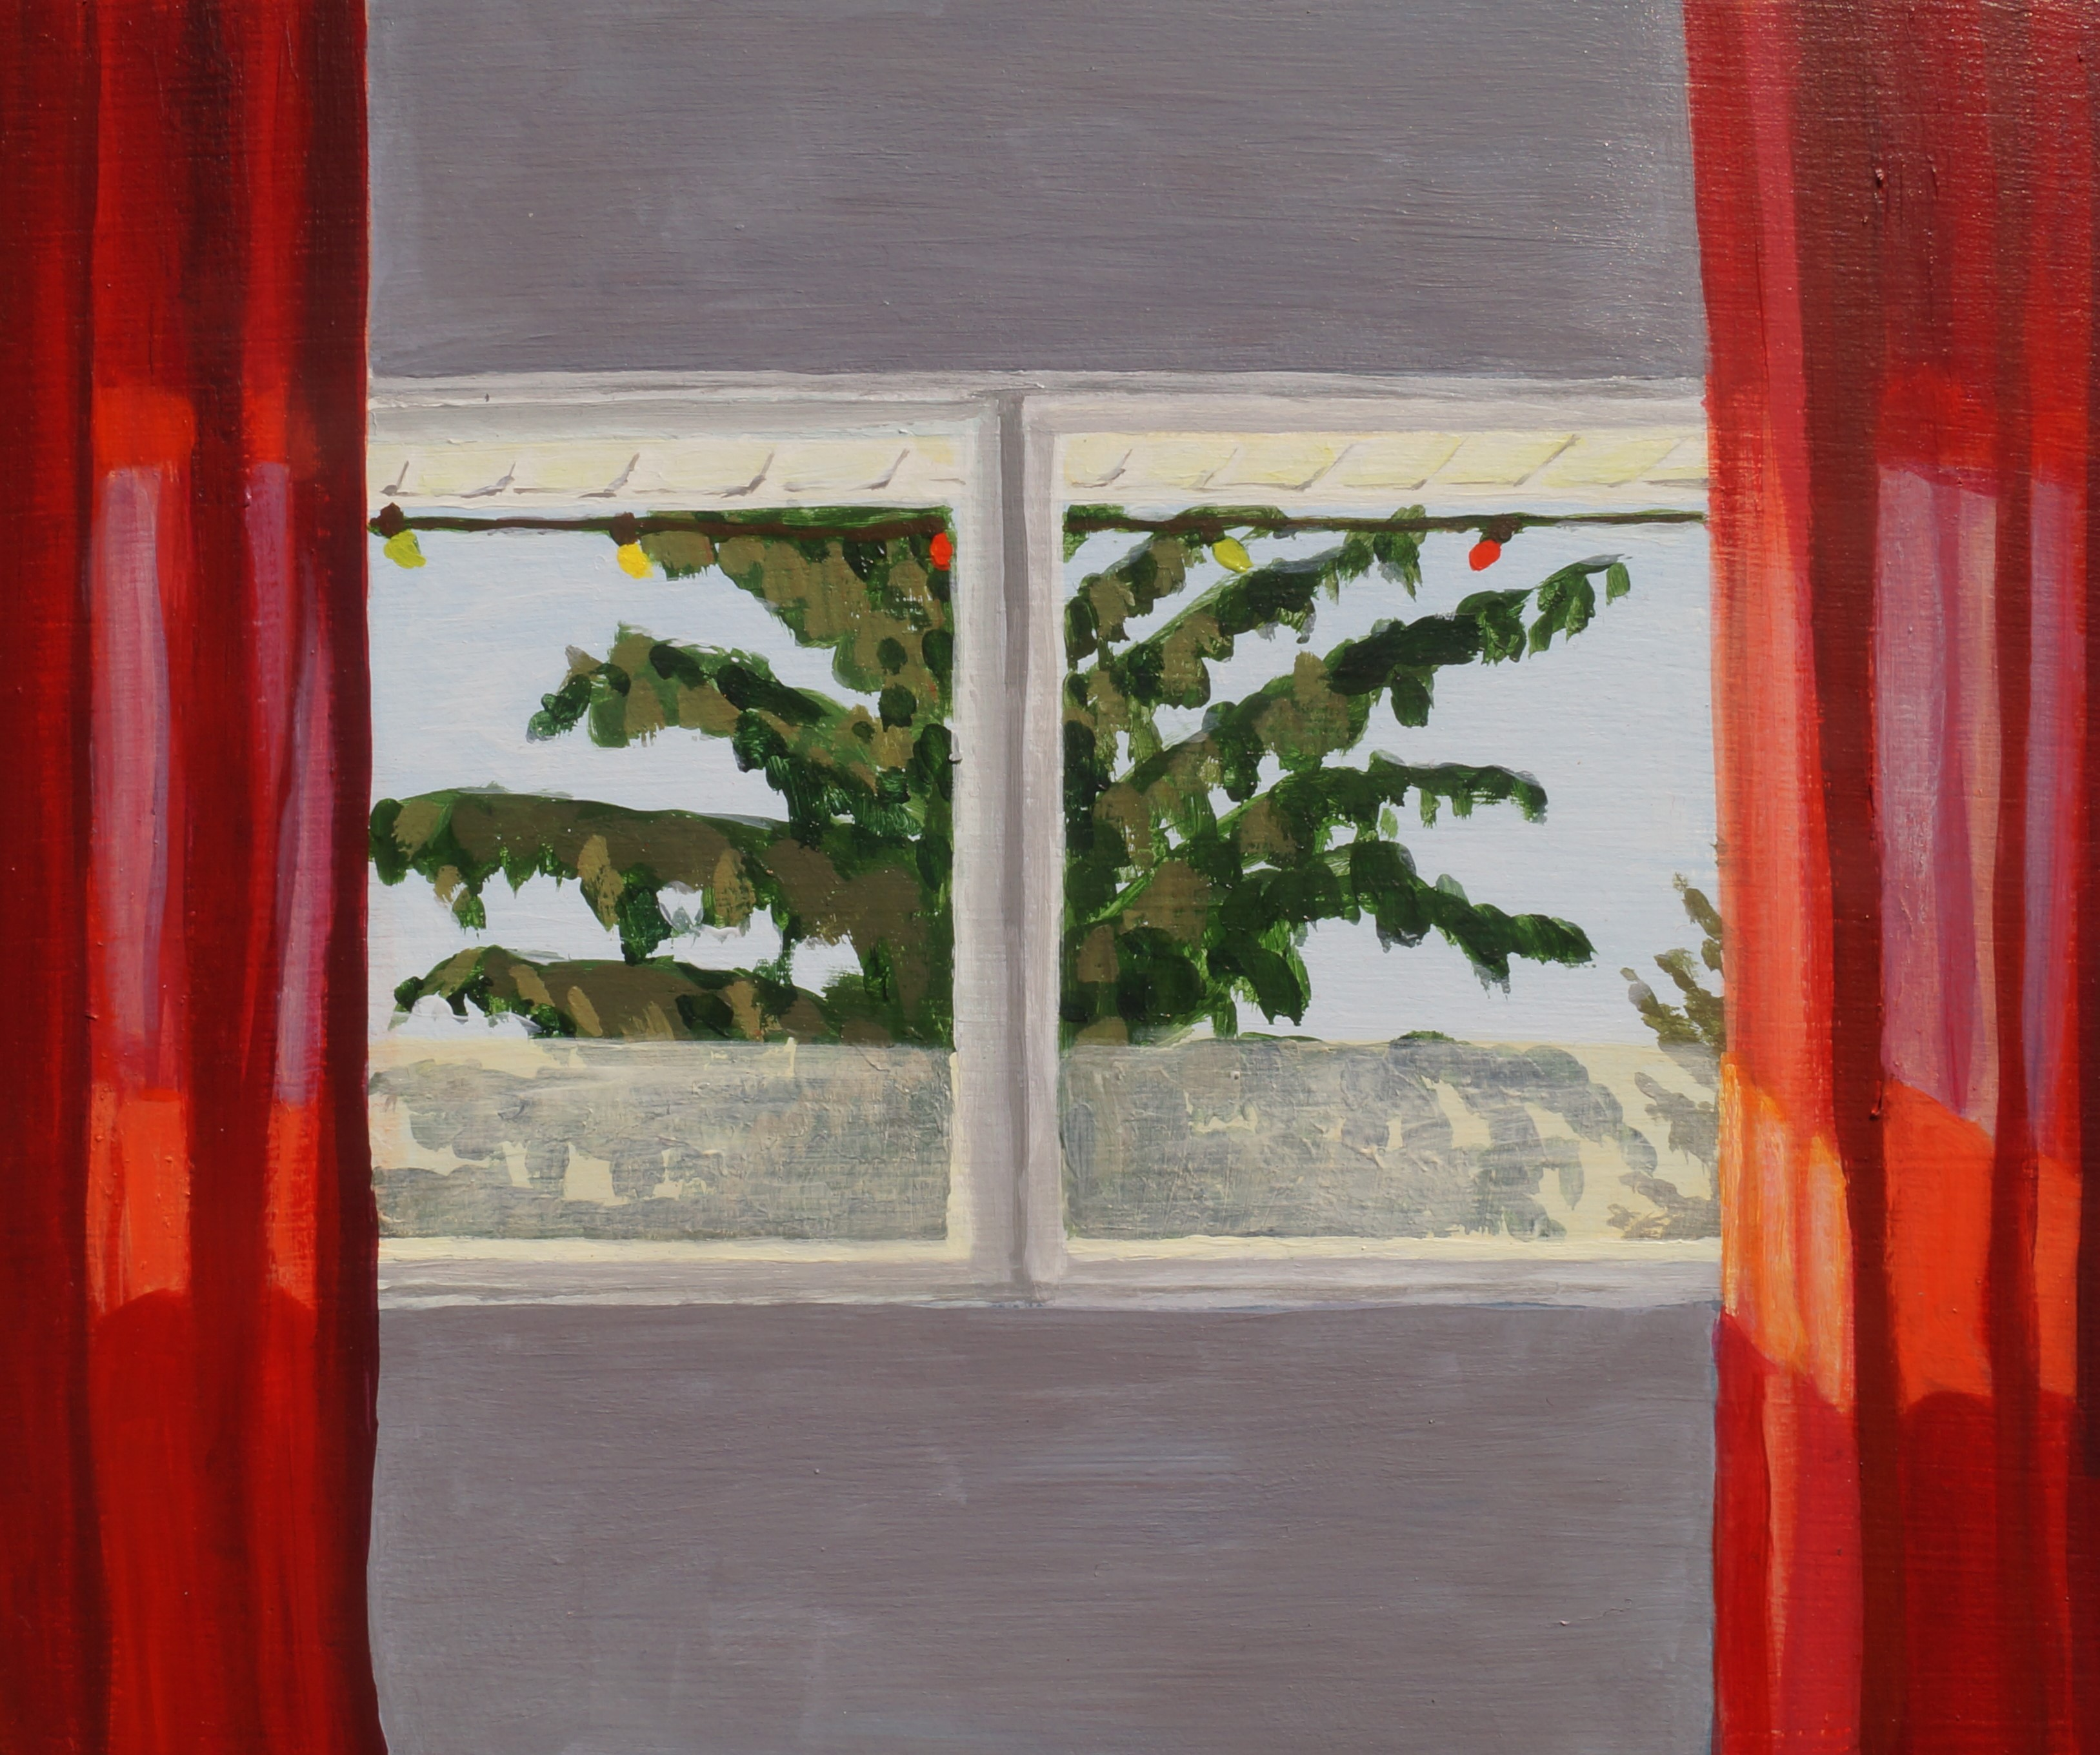 South facing window (with evergreen tree), 2021, acrylic on panel, 10in. x 12in.